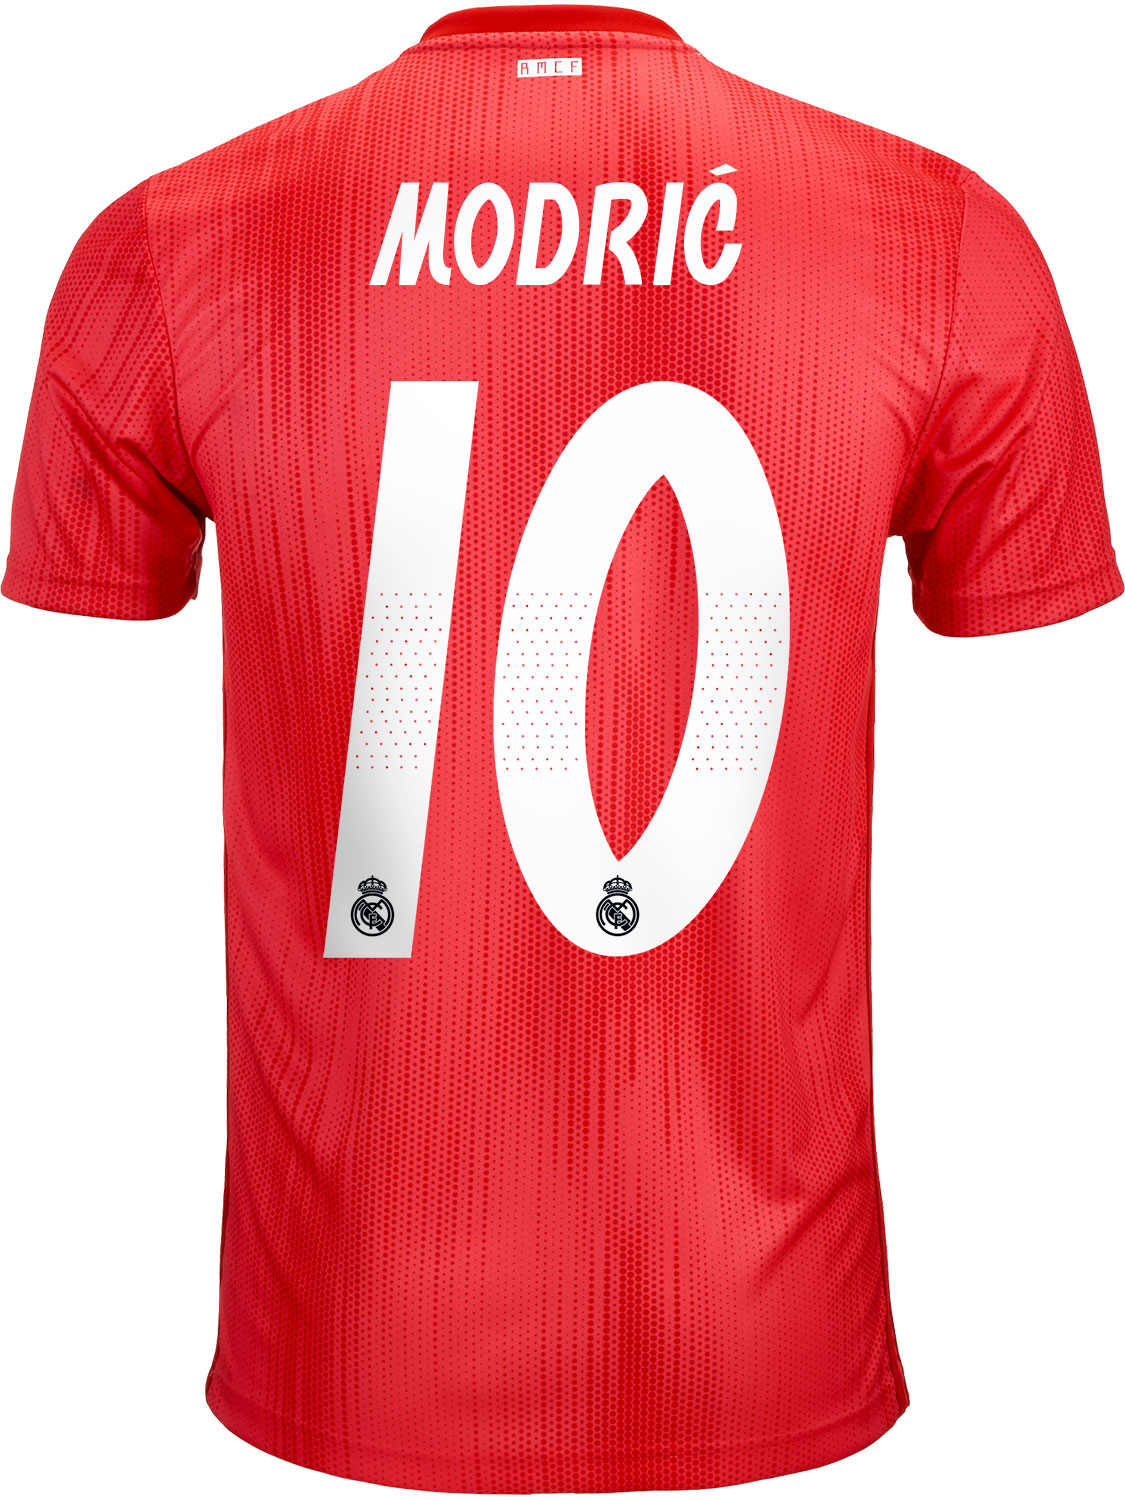 check out 6a74a 9455c 2018/19 adidas Kids Luka Modric Real Madrid 3rd Jersey ...